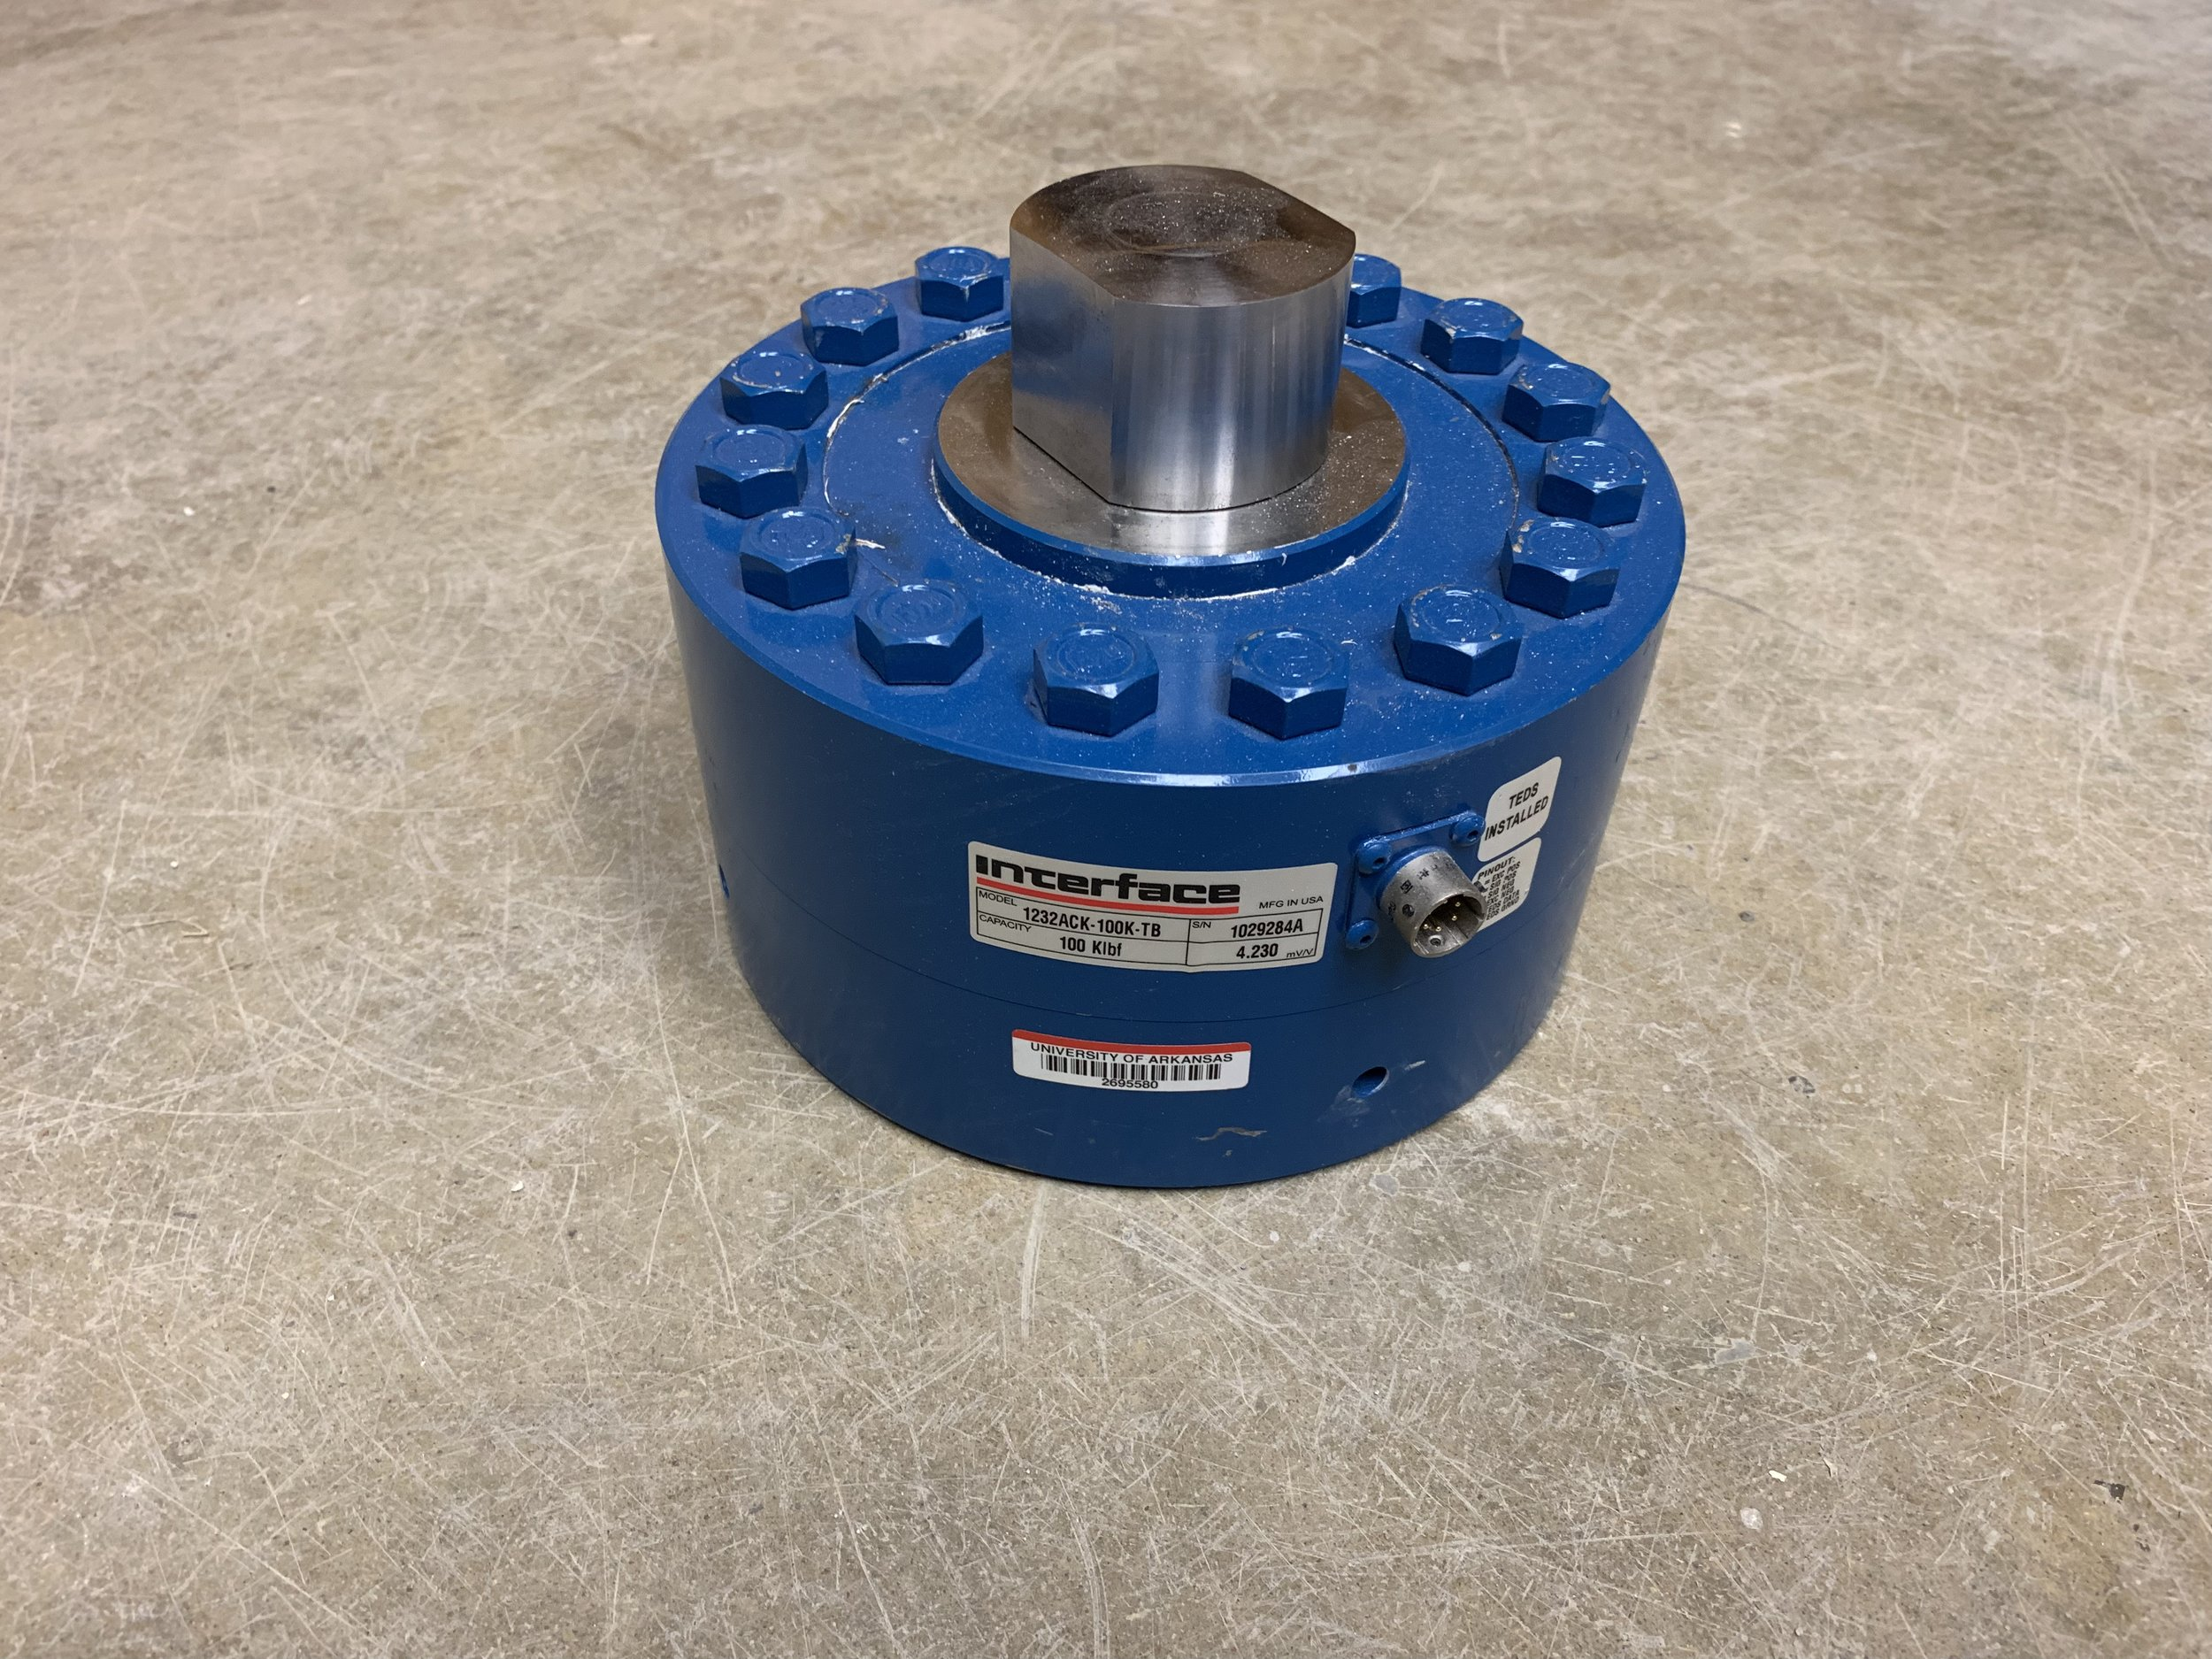 Interface 1200 series load cell (100k)